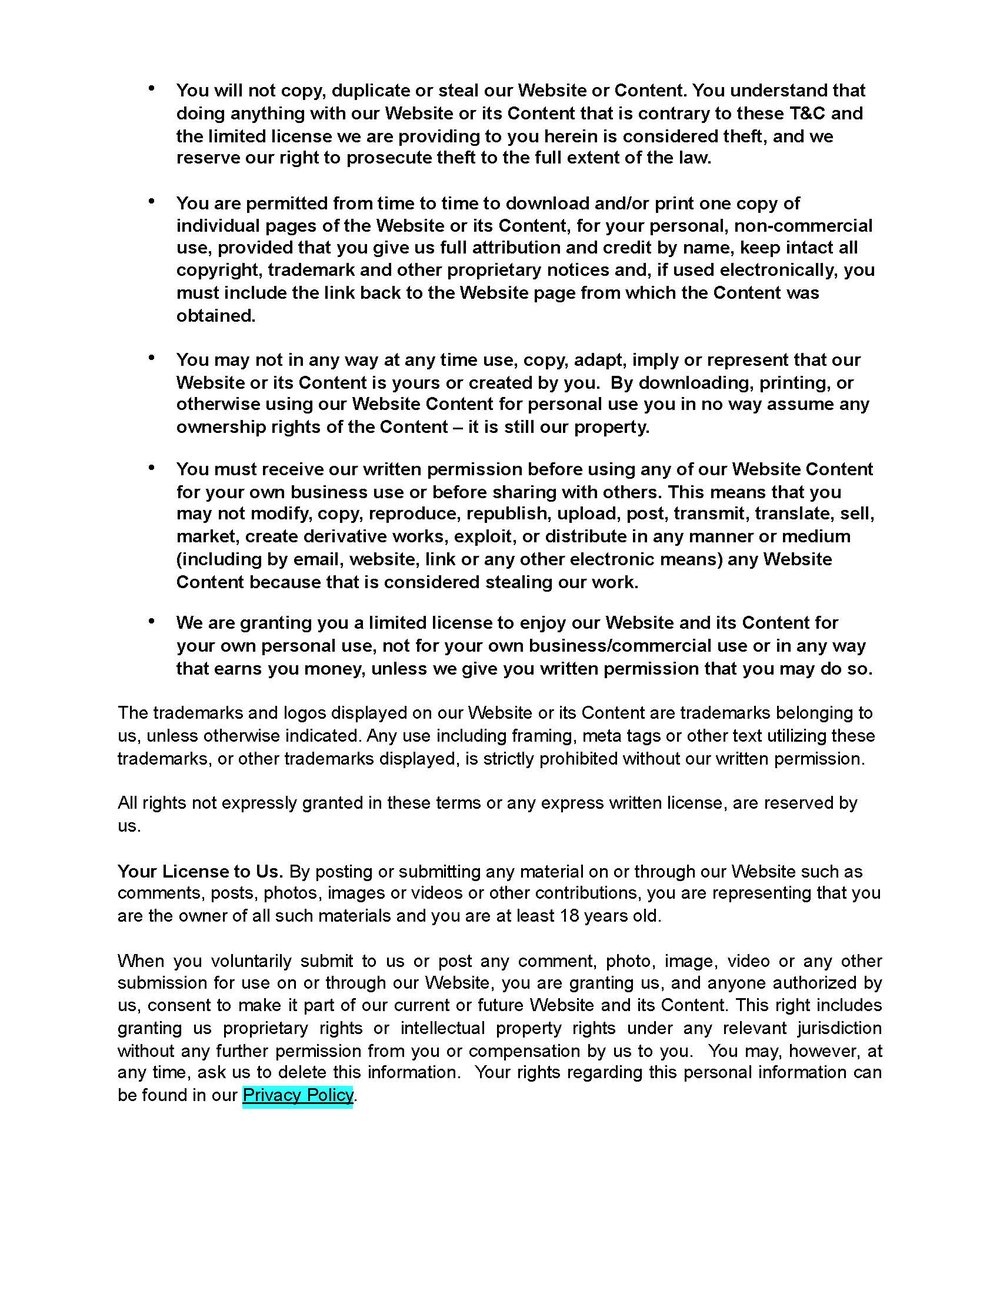 diy-website-terms-and-conditions-gdpr (1)_Page_2.jpg